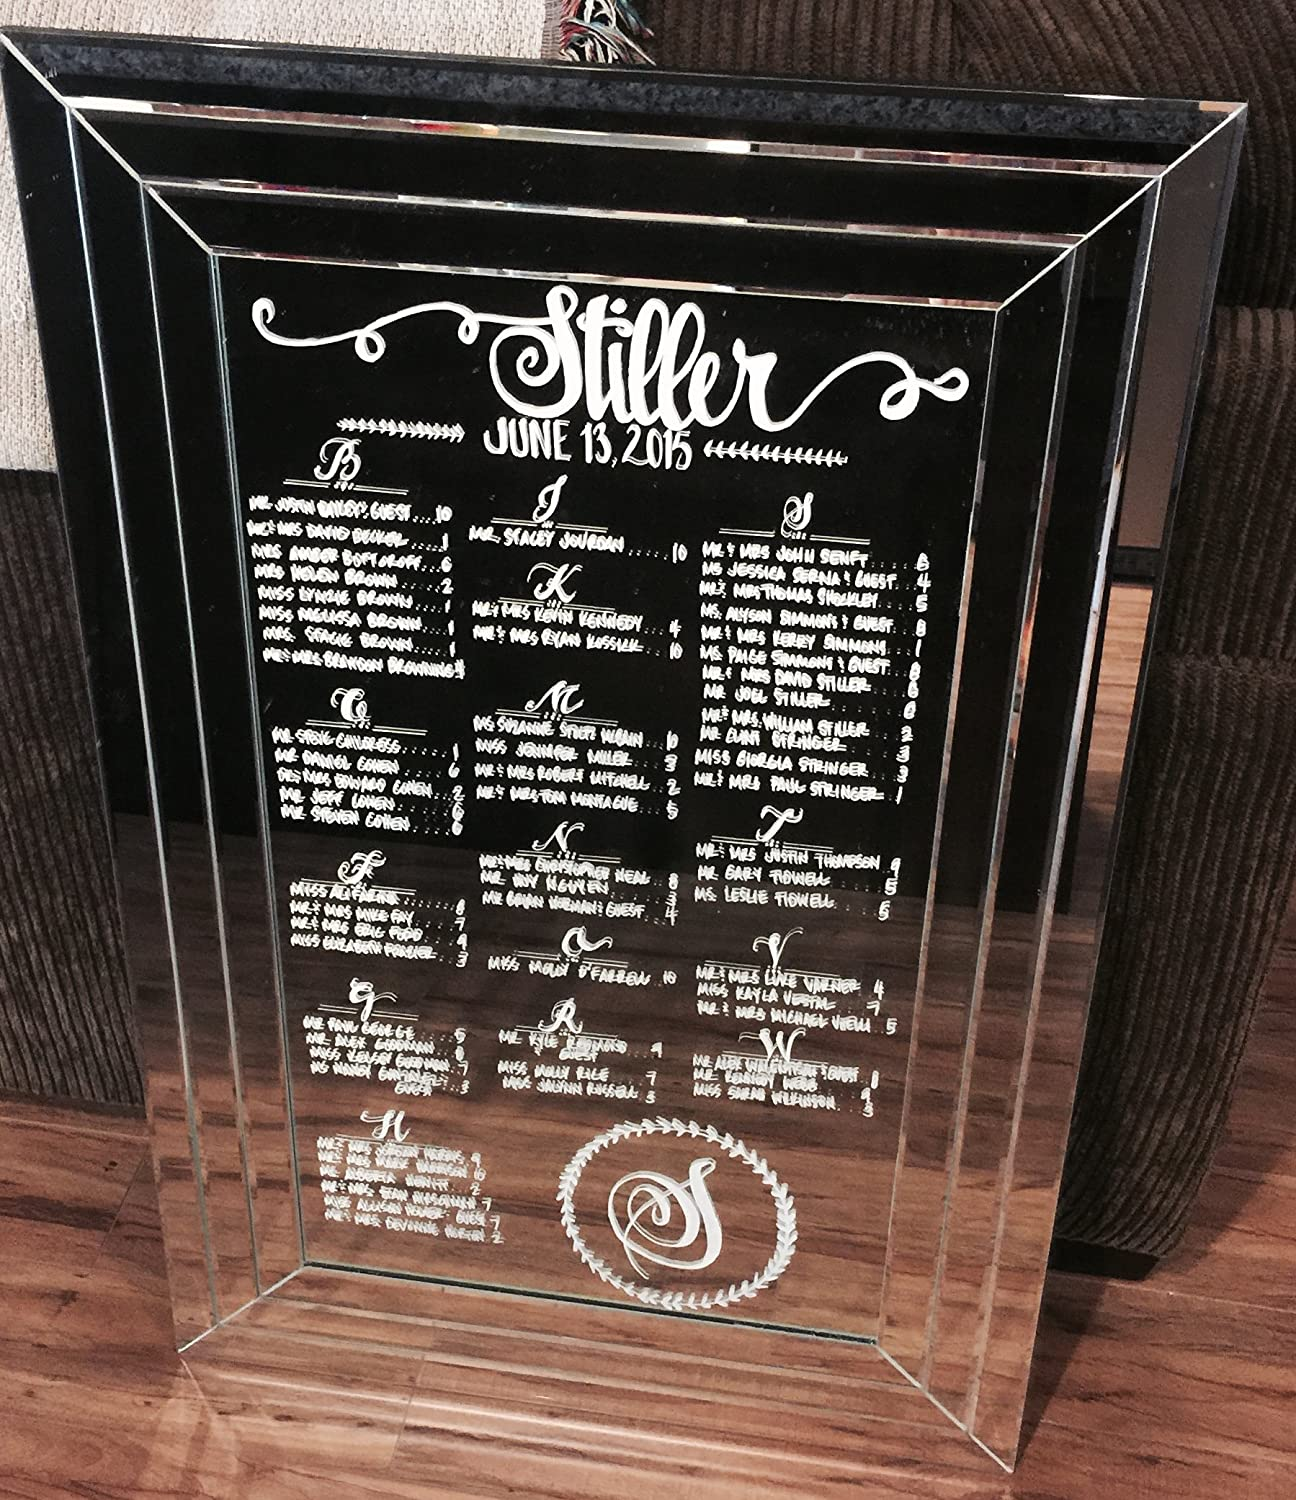 Frameless Mirror for Wedding Seating Charts 200 guests or less